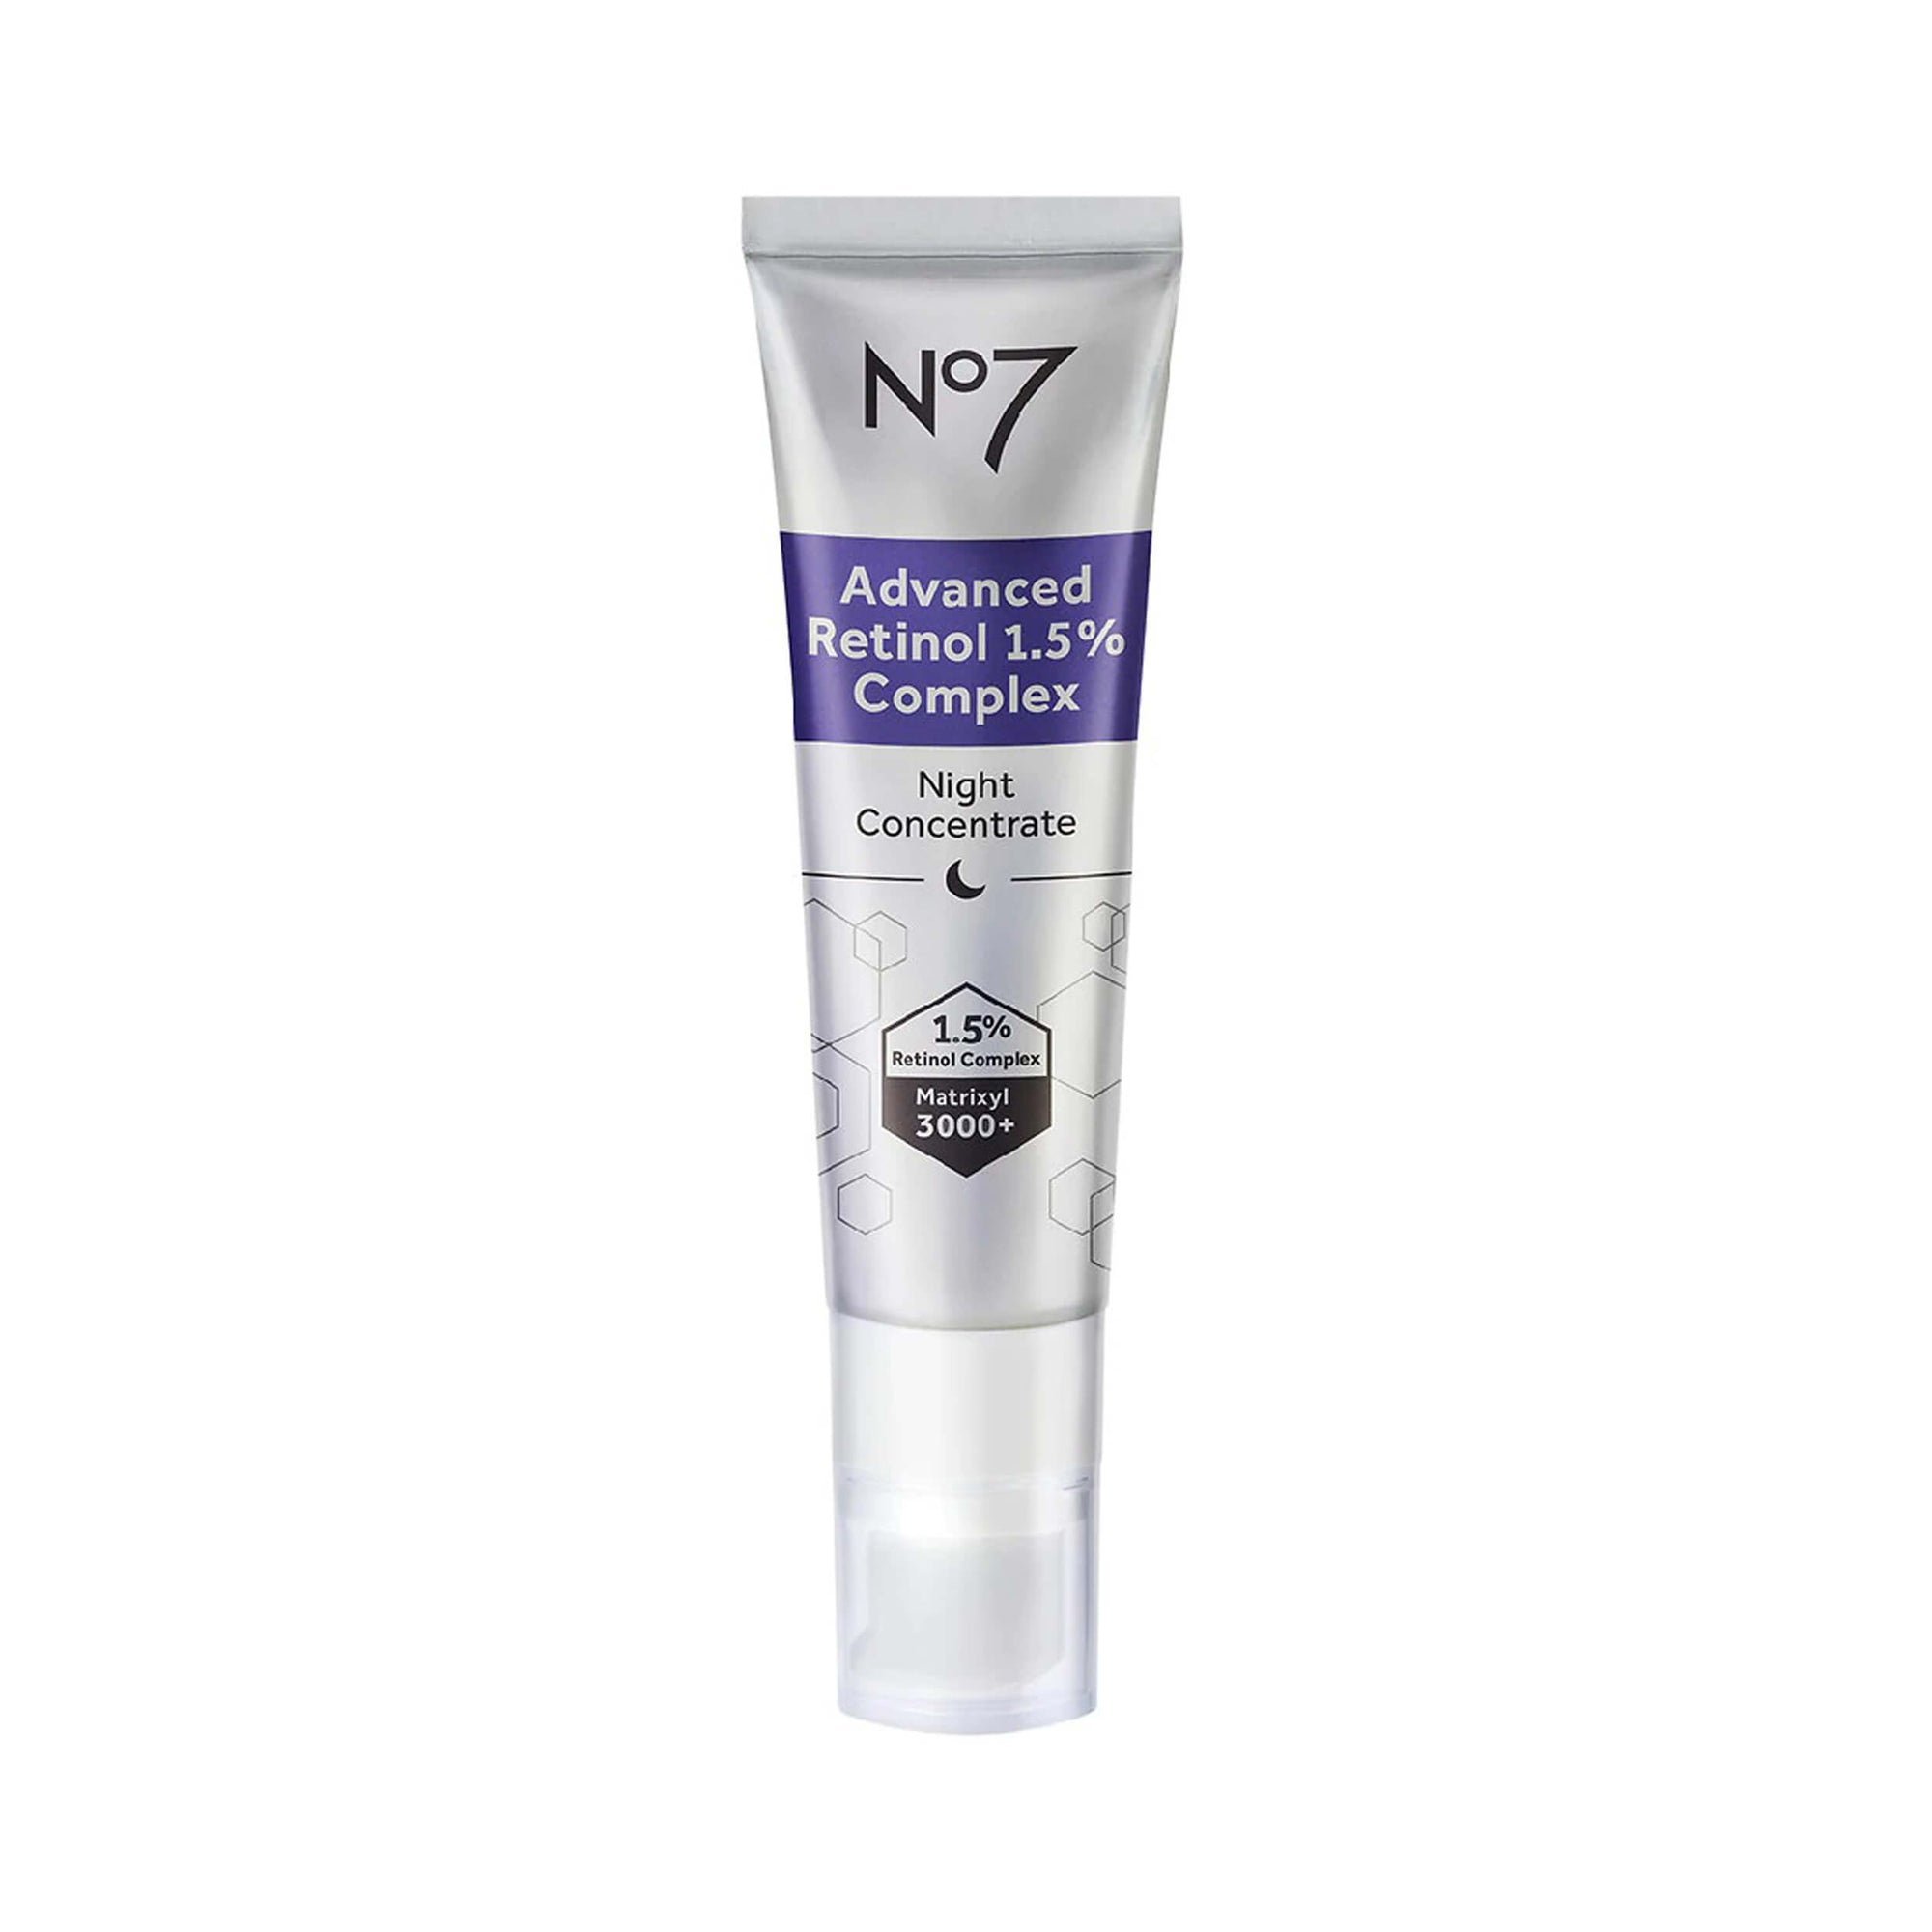 No7 Advanced Retinol 1.5% Complex Night Concentrate 30 mL